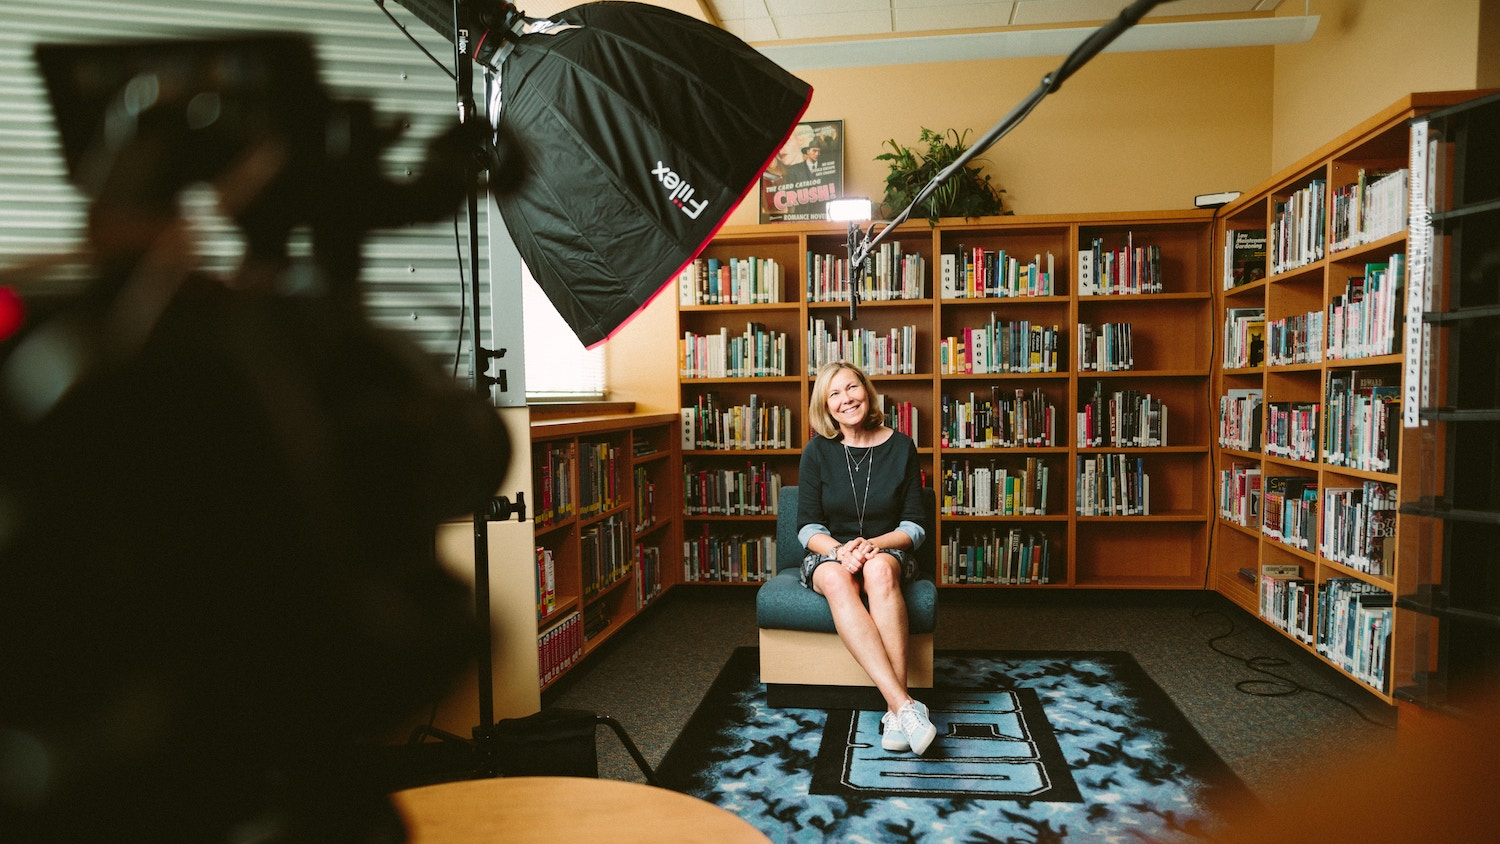 local business owner shooting a video in a library